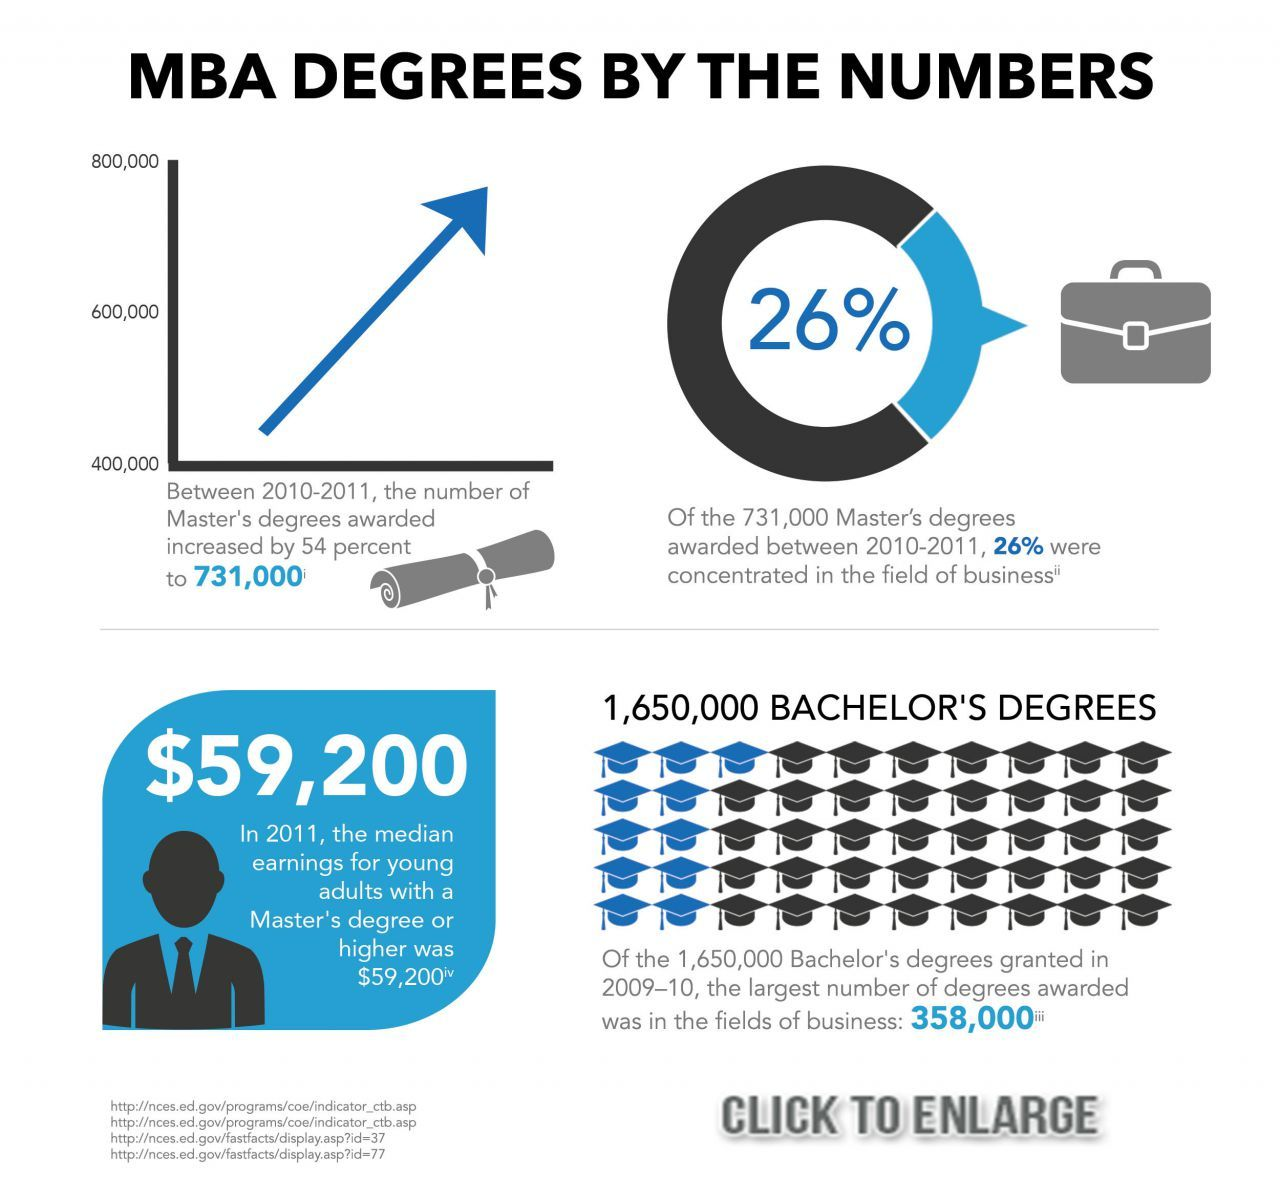 What Is An Mba Why Get An Mba How Much Does An Mba Cost Mba Degree Mba School Images